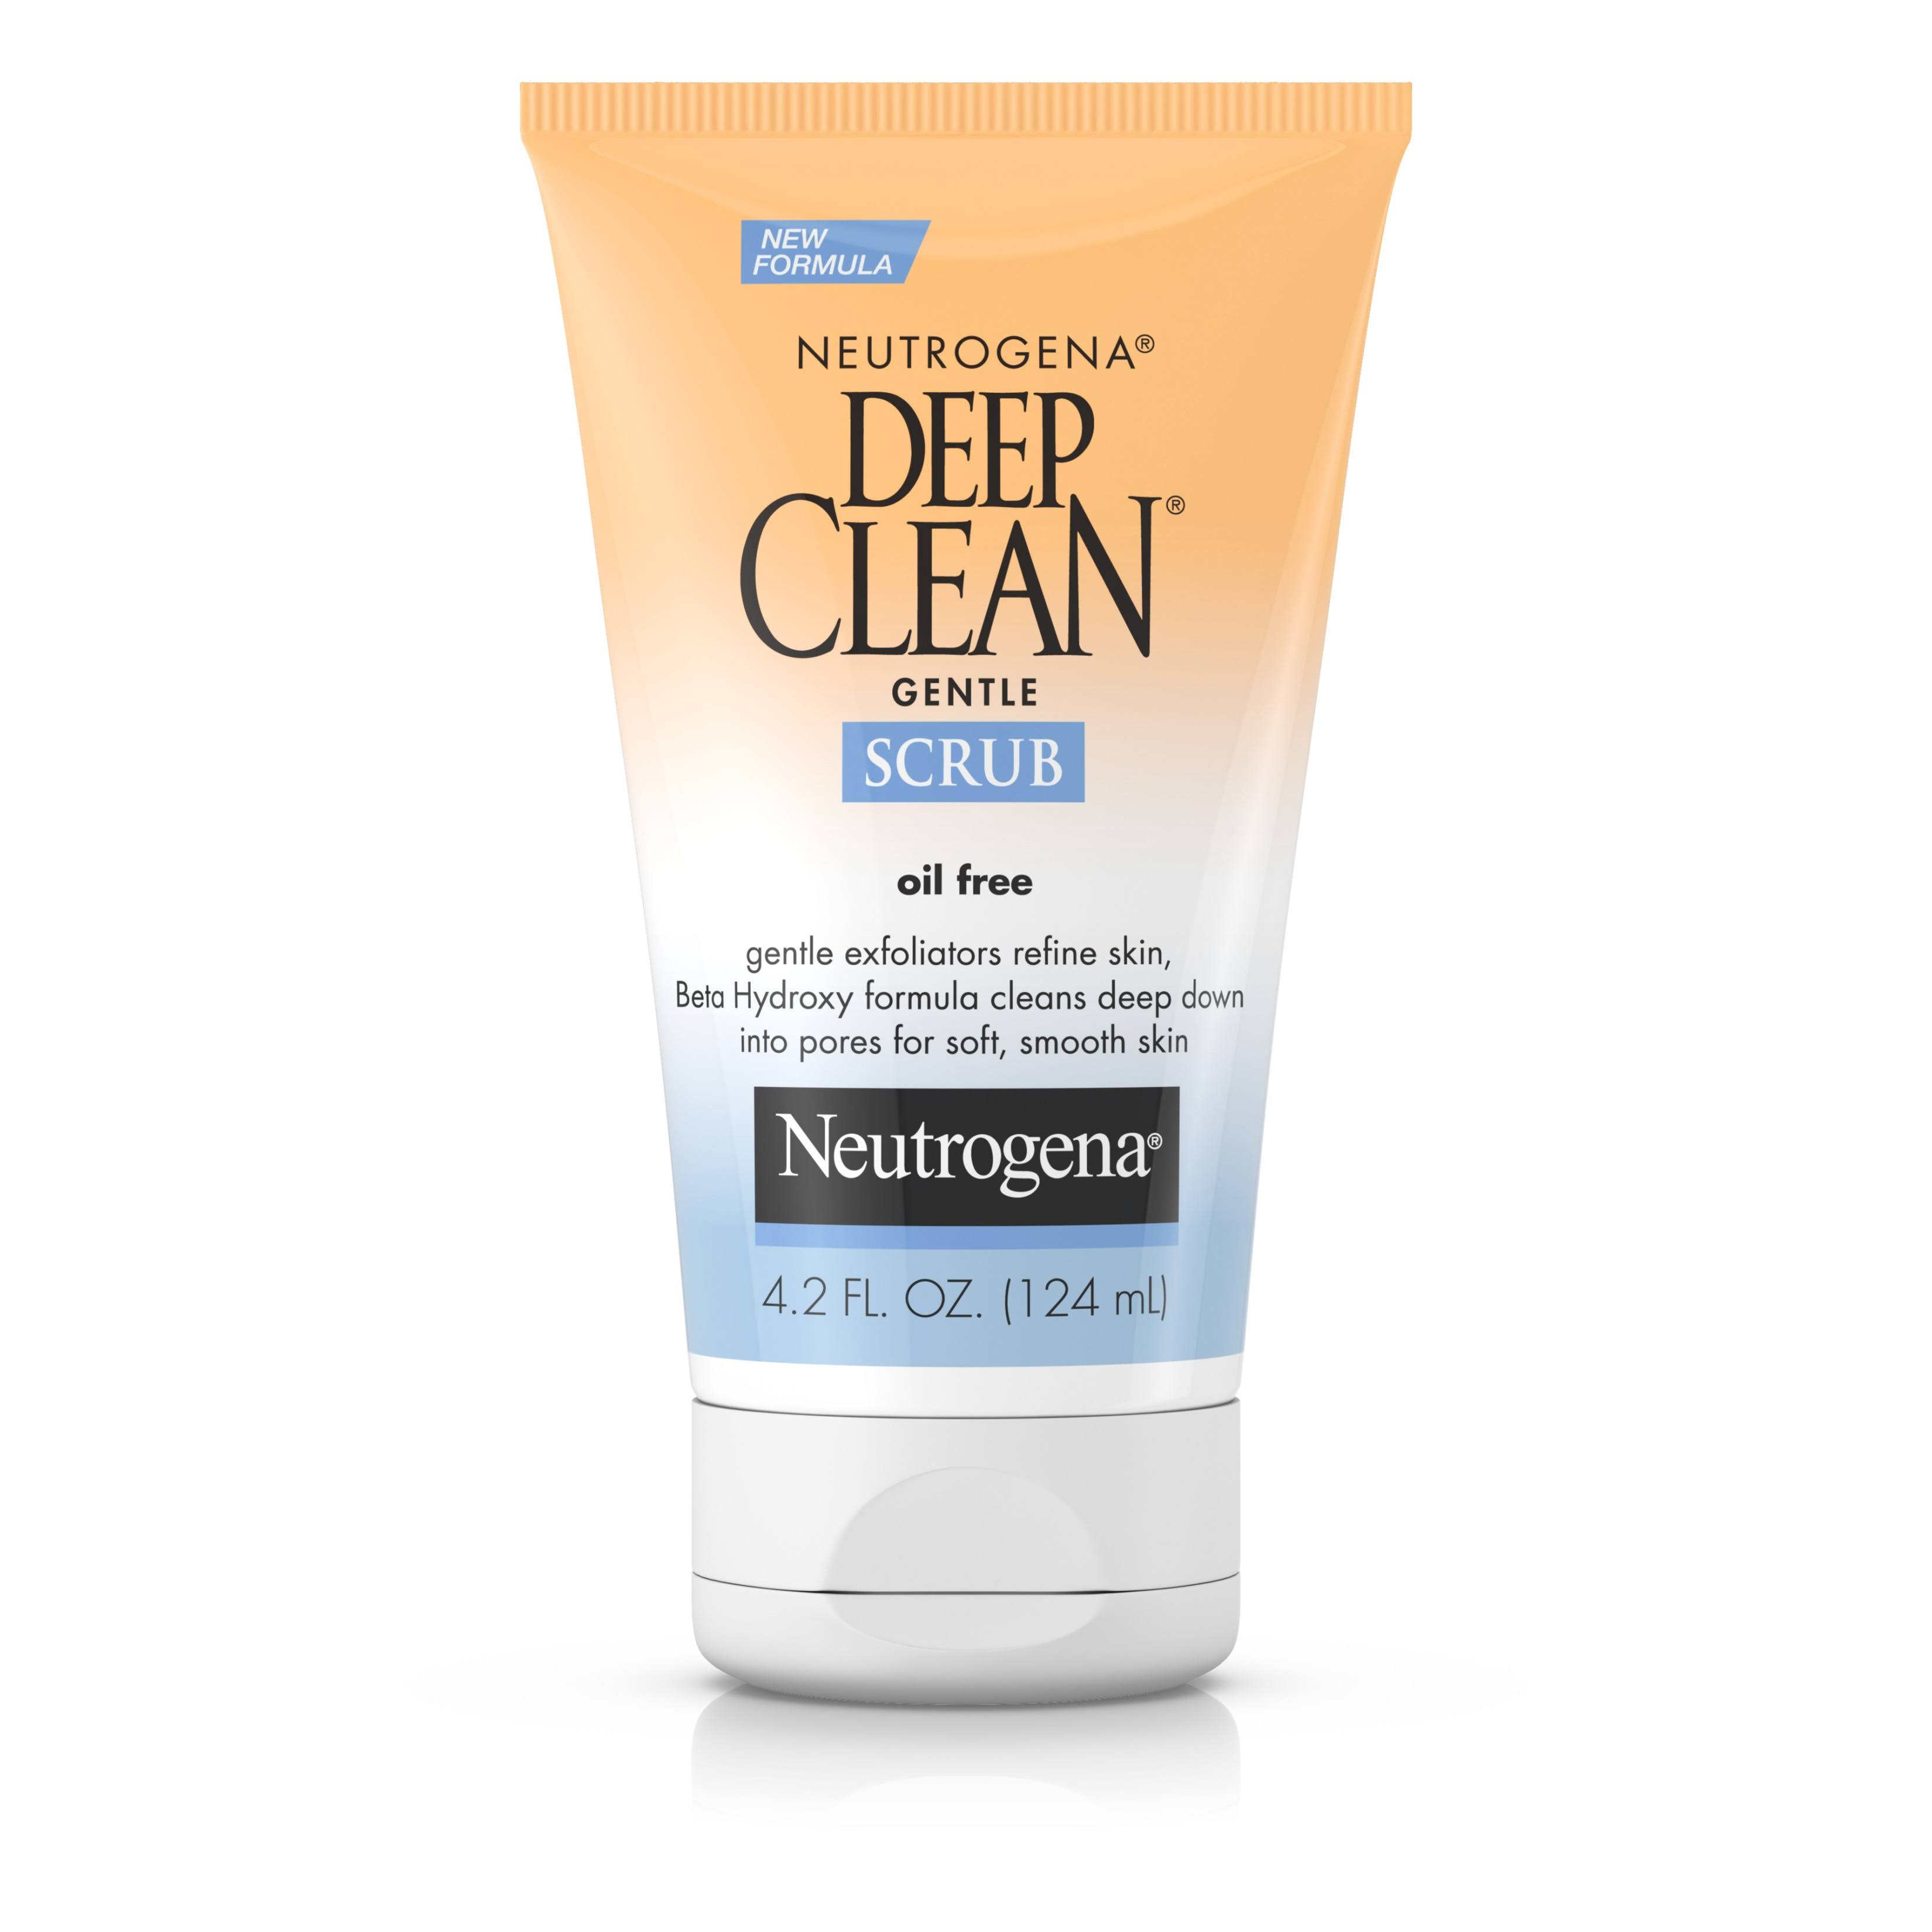 Neutrogena Deep Clean Gentle Facial Scrub